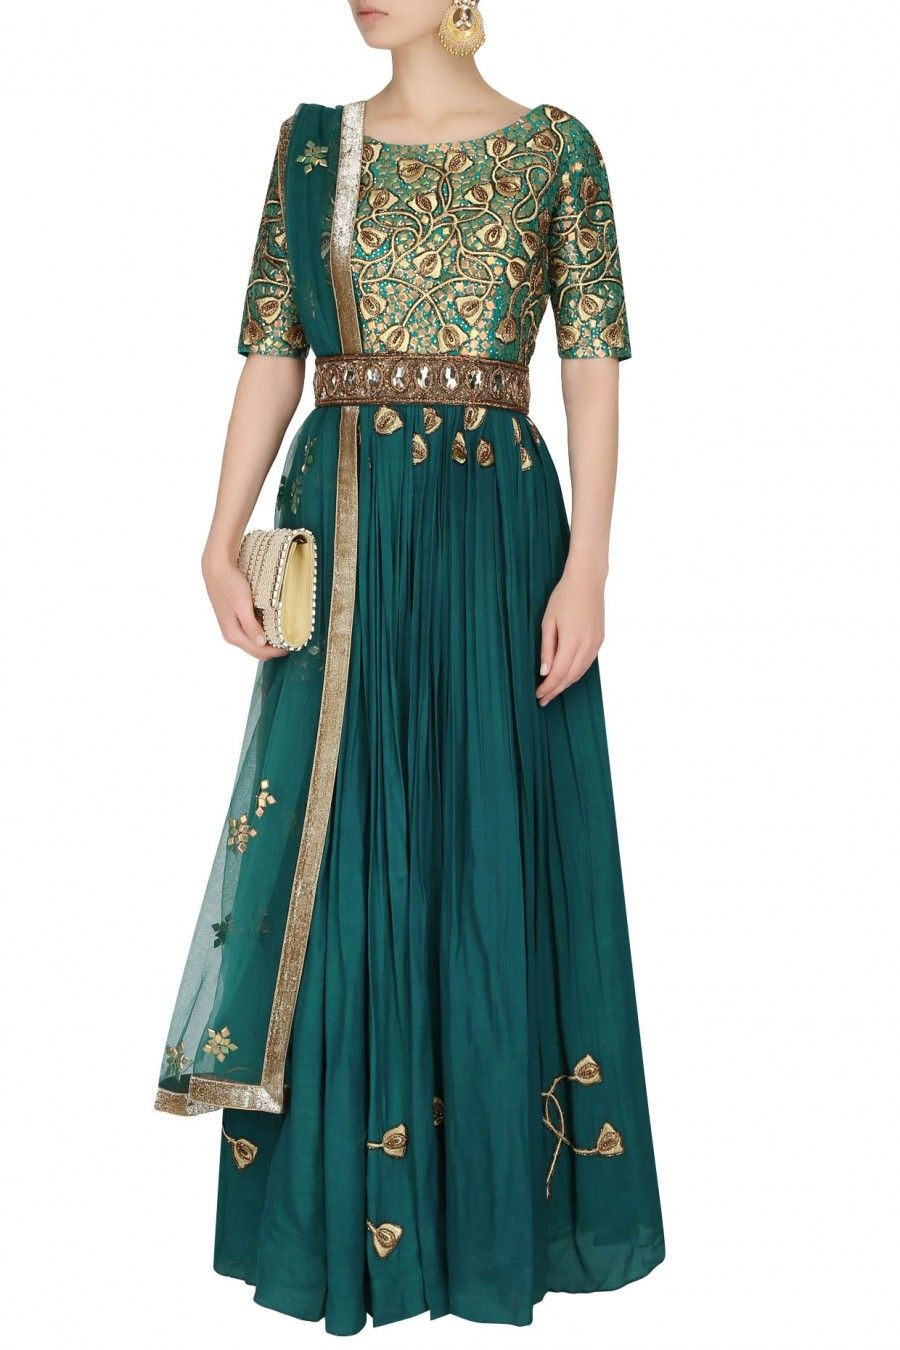 Bottle green embroidered floor length suit with green churidaar pants available only at Pernia's Pop Up Shop.